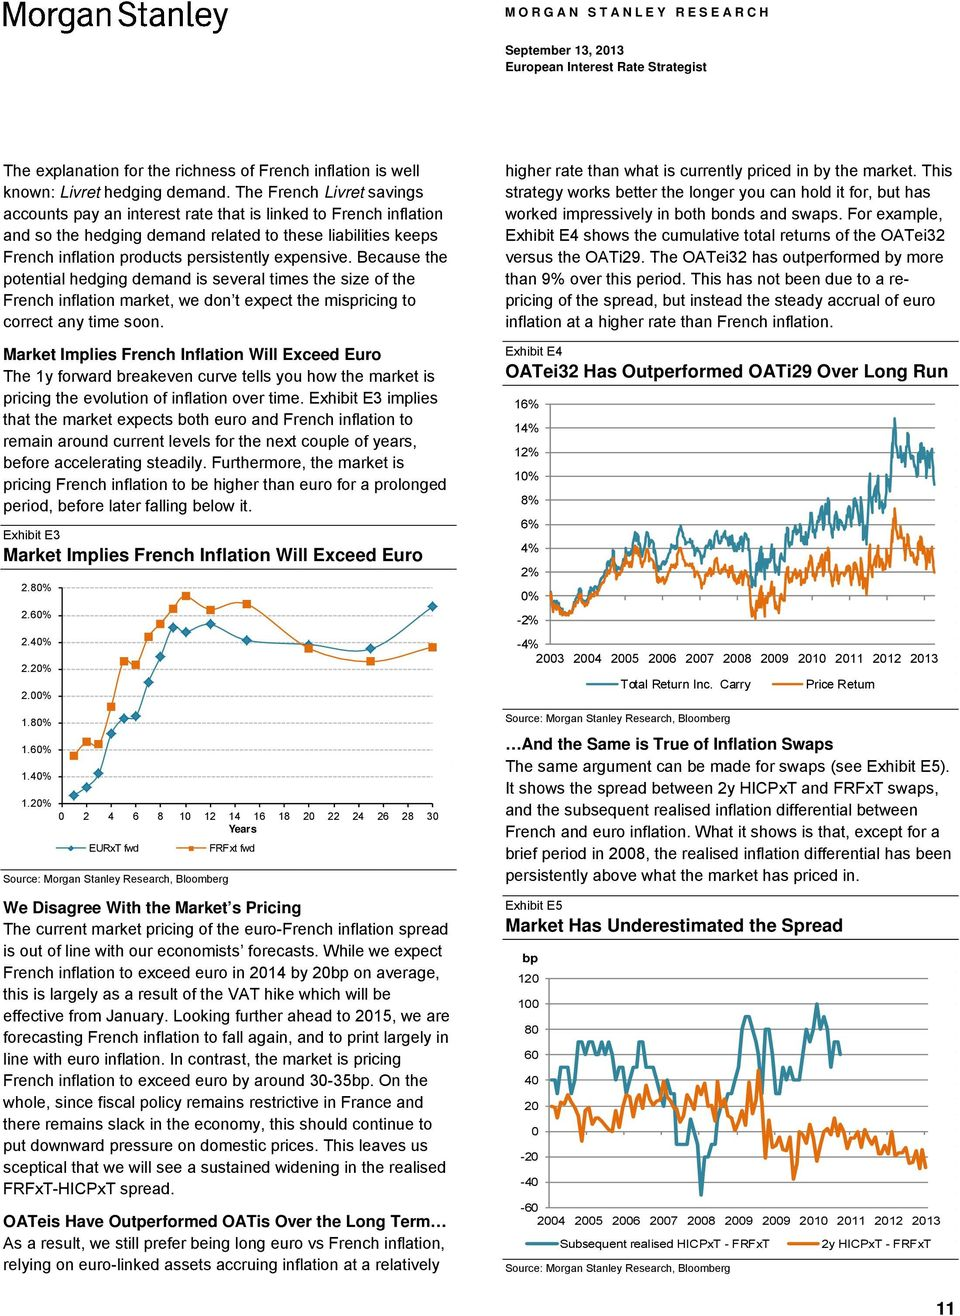 expensive. Because the potential hedging demand is several times the size of the French inflation market, we don t expect the mispricing to correct any time soon.